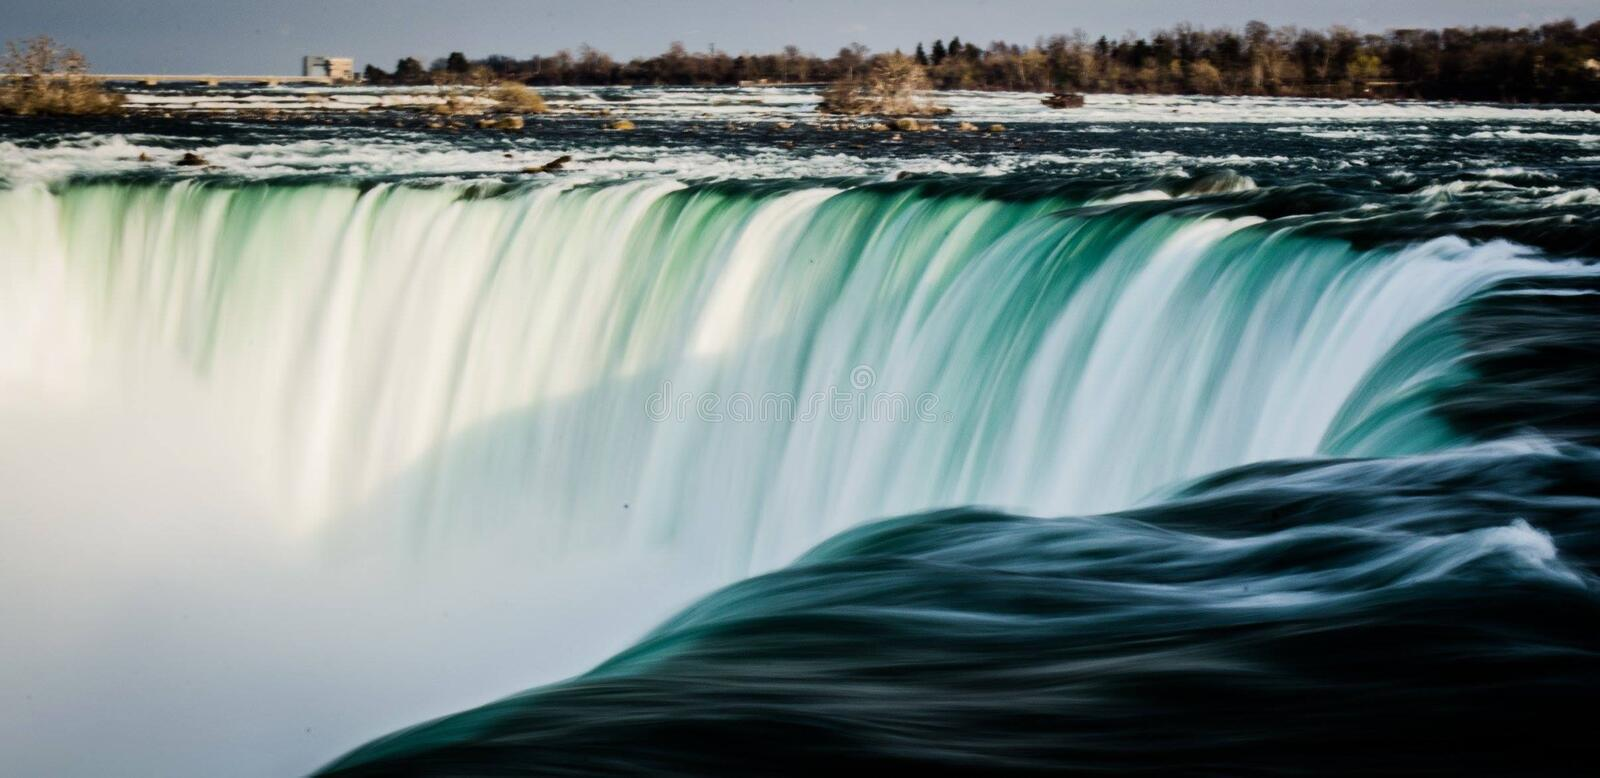 Green White Waterfall During Daytime Free Public Domain Cc0 Image